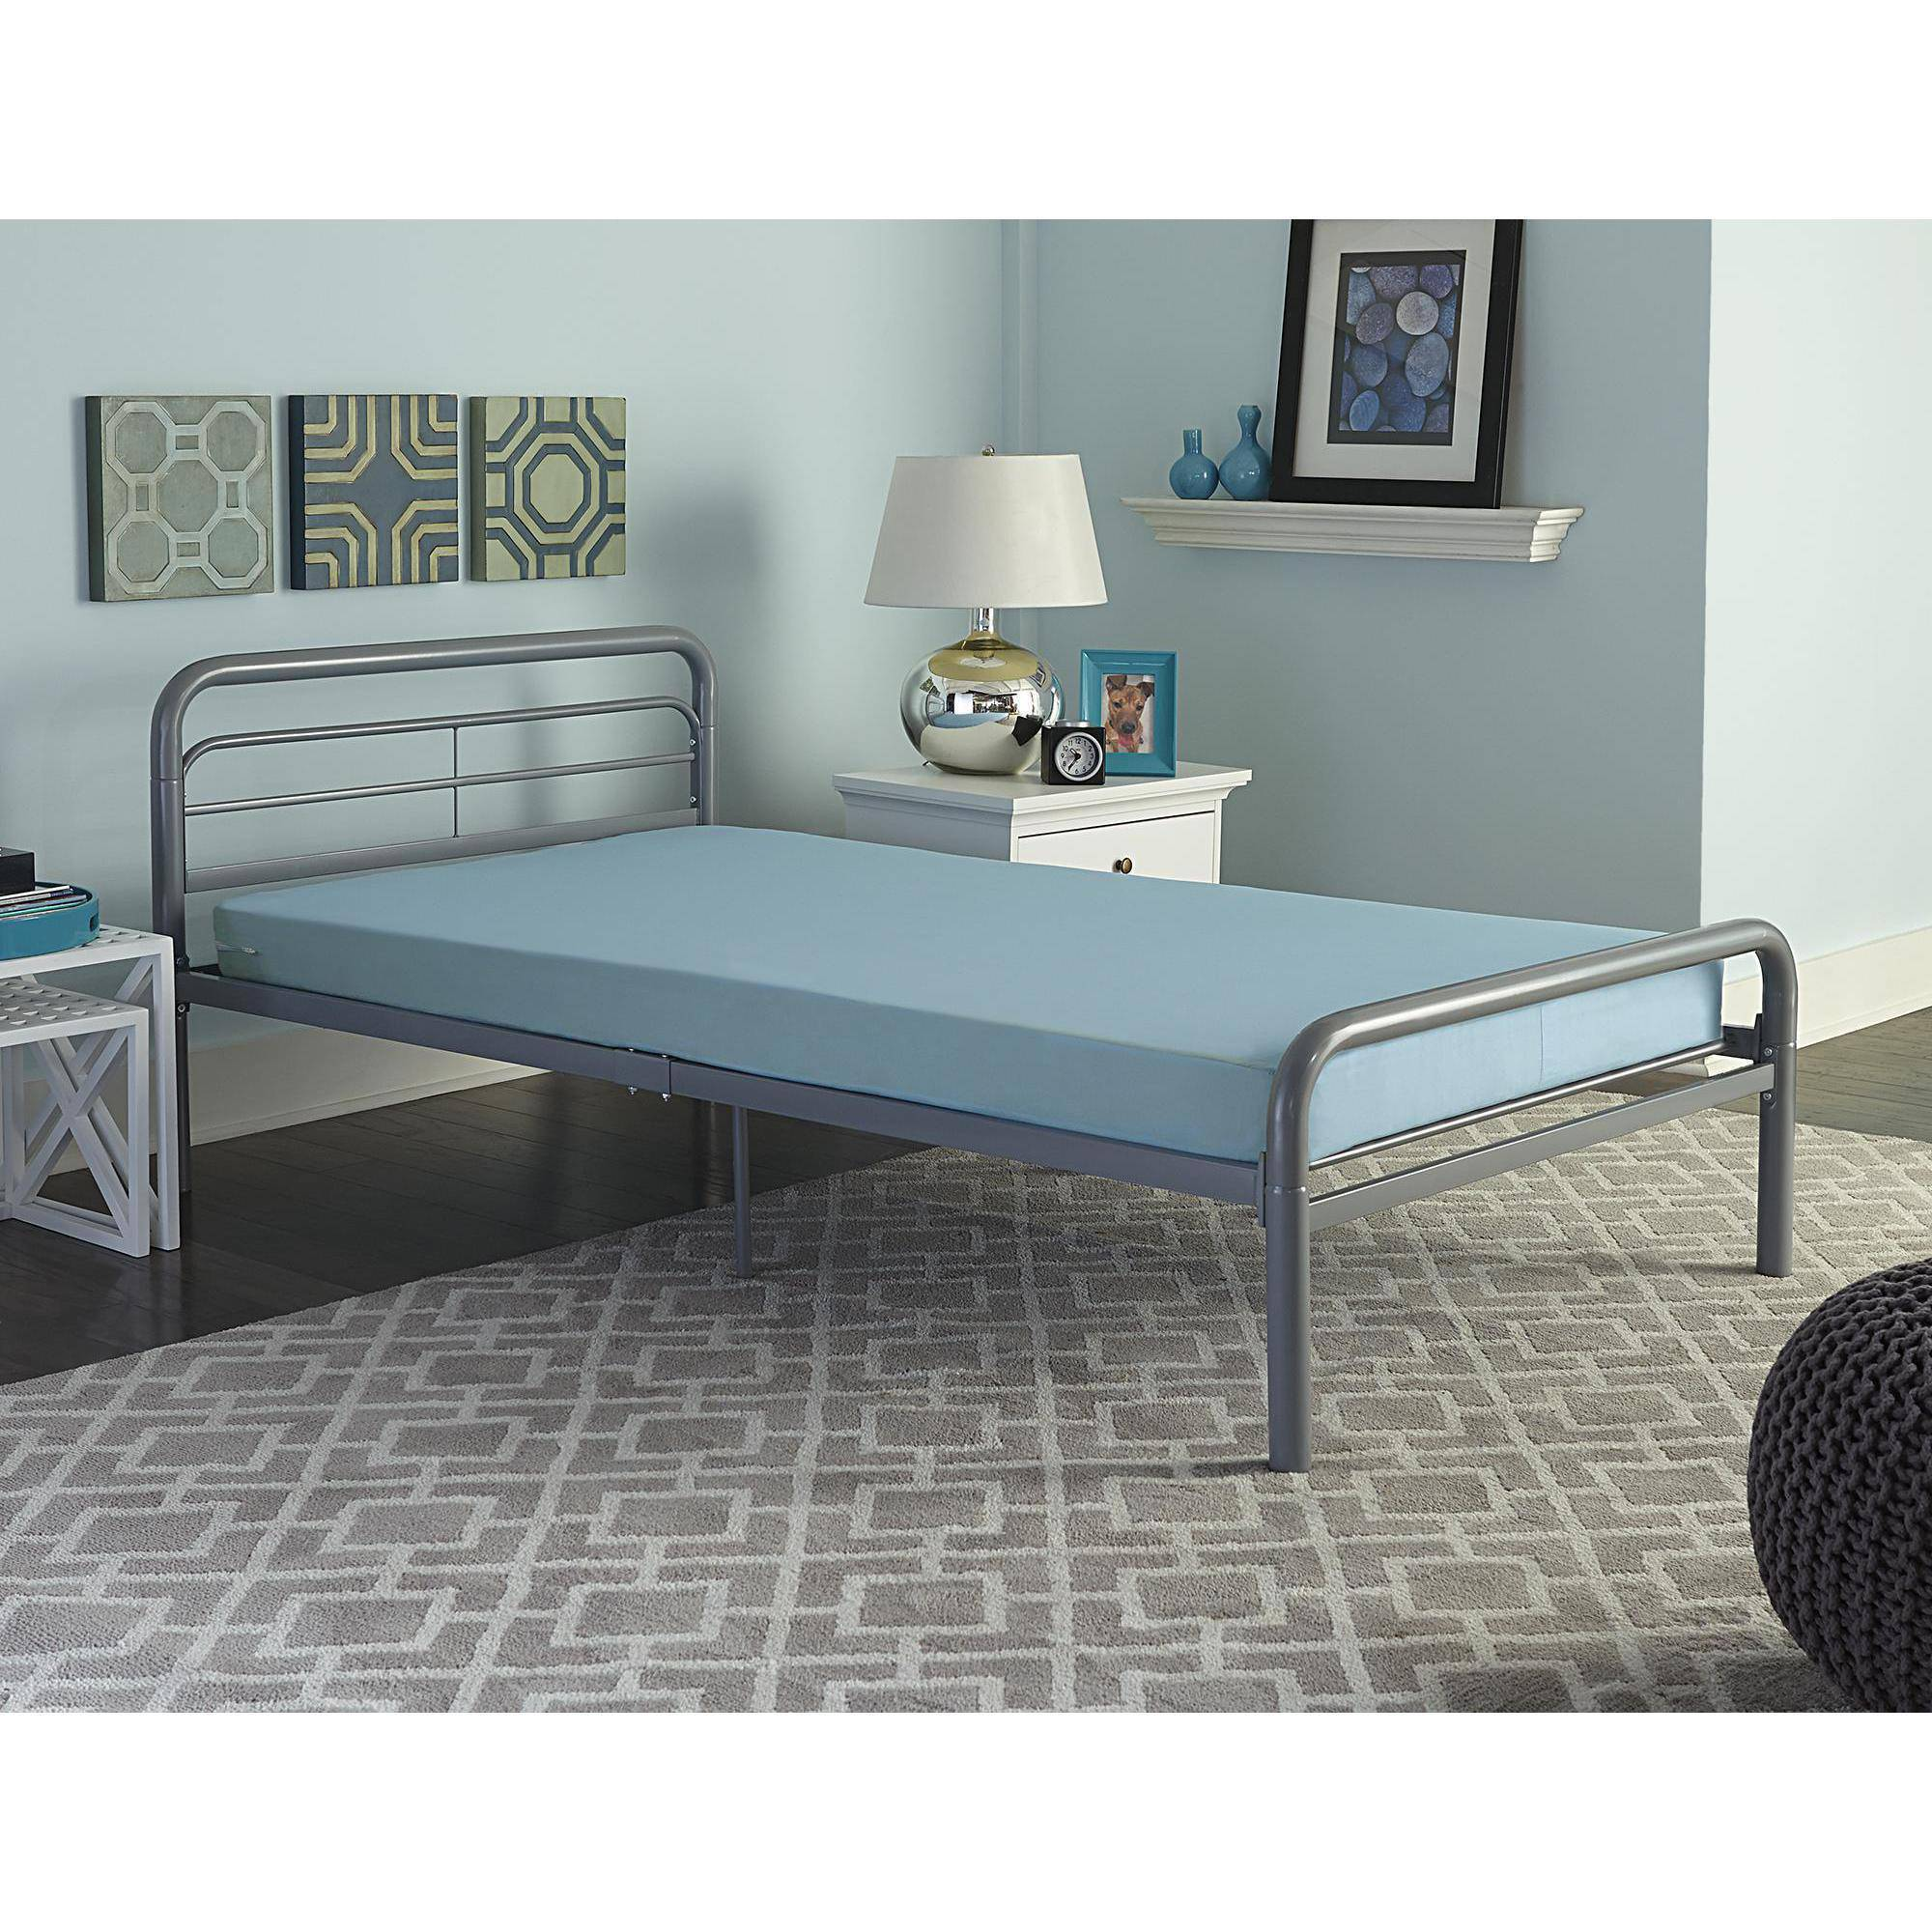 Dorel Home Products Twin Mattress, Blue